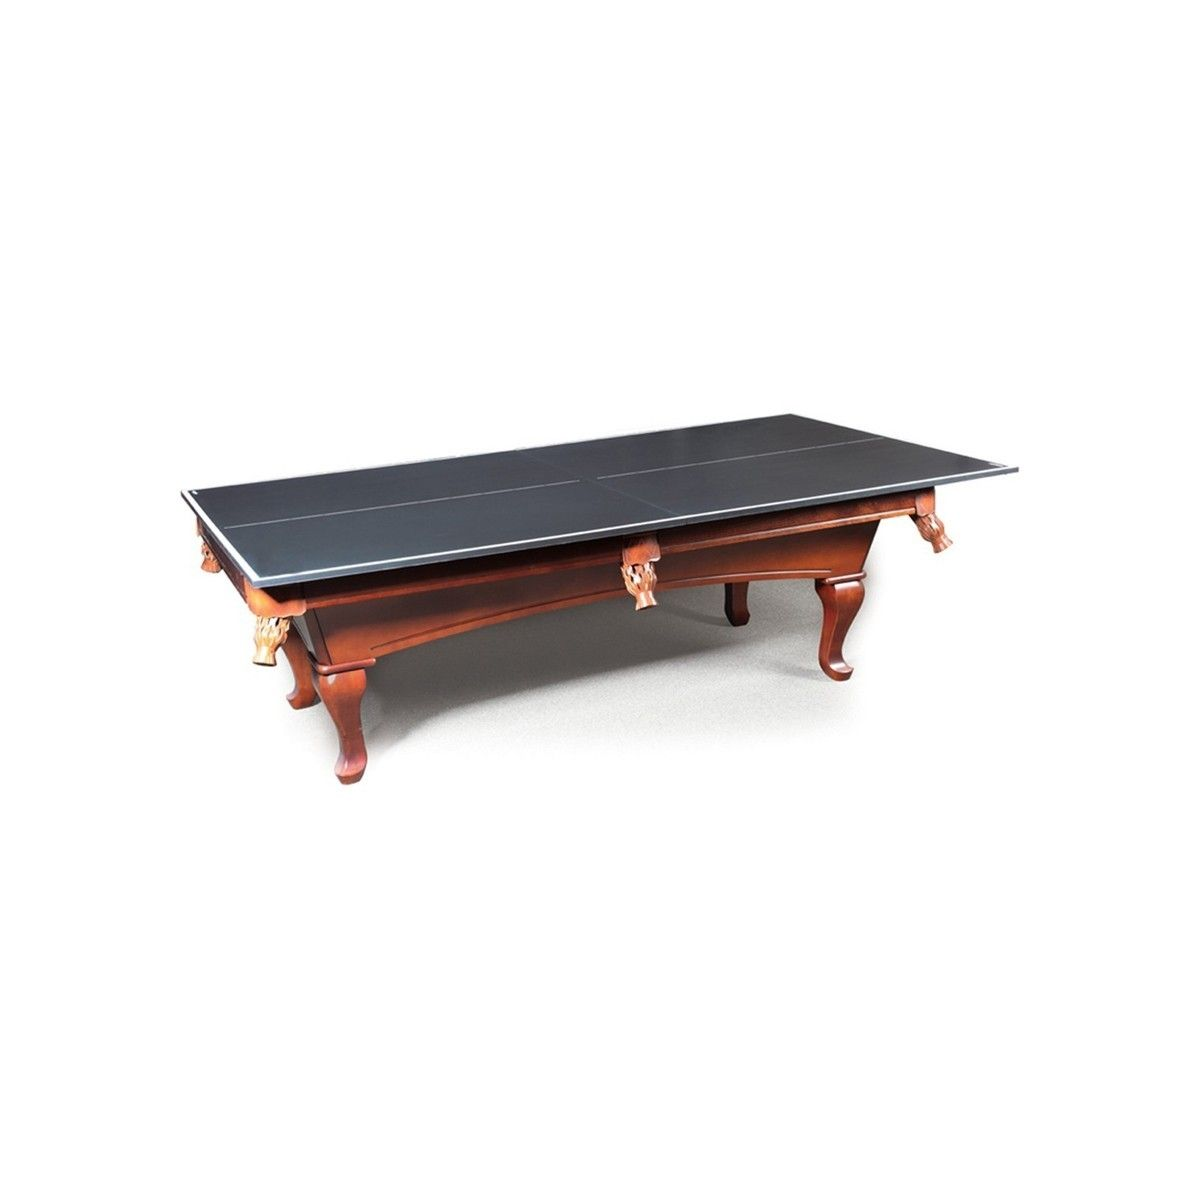 Imperial Conversion Table Tennis Top Black Table Tennis Table Tennis Conversion Top Black Pool Table